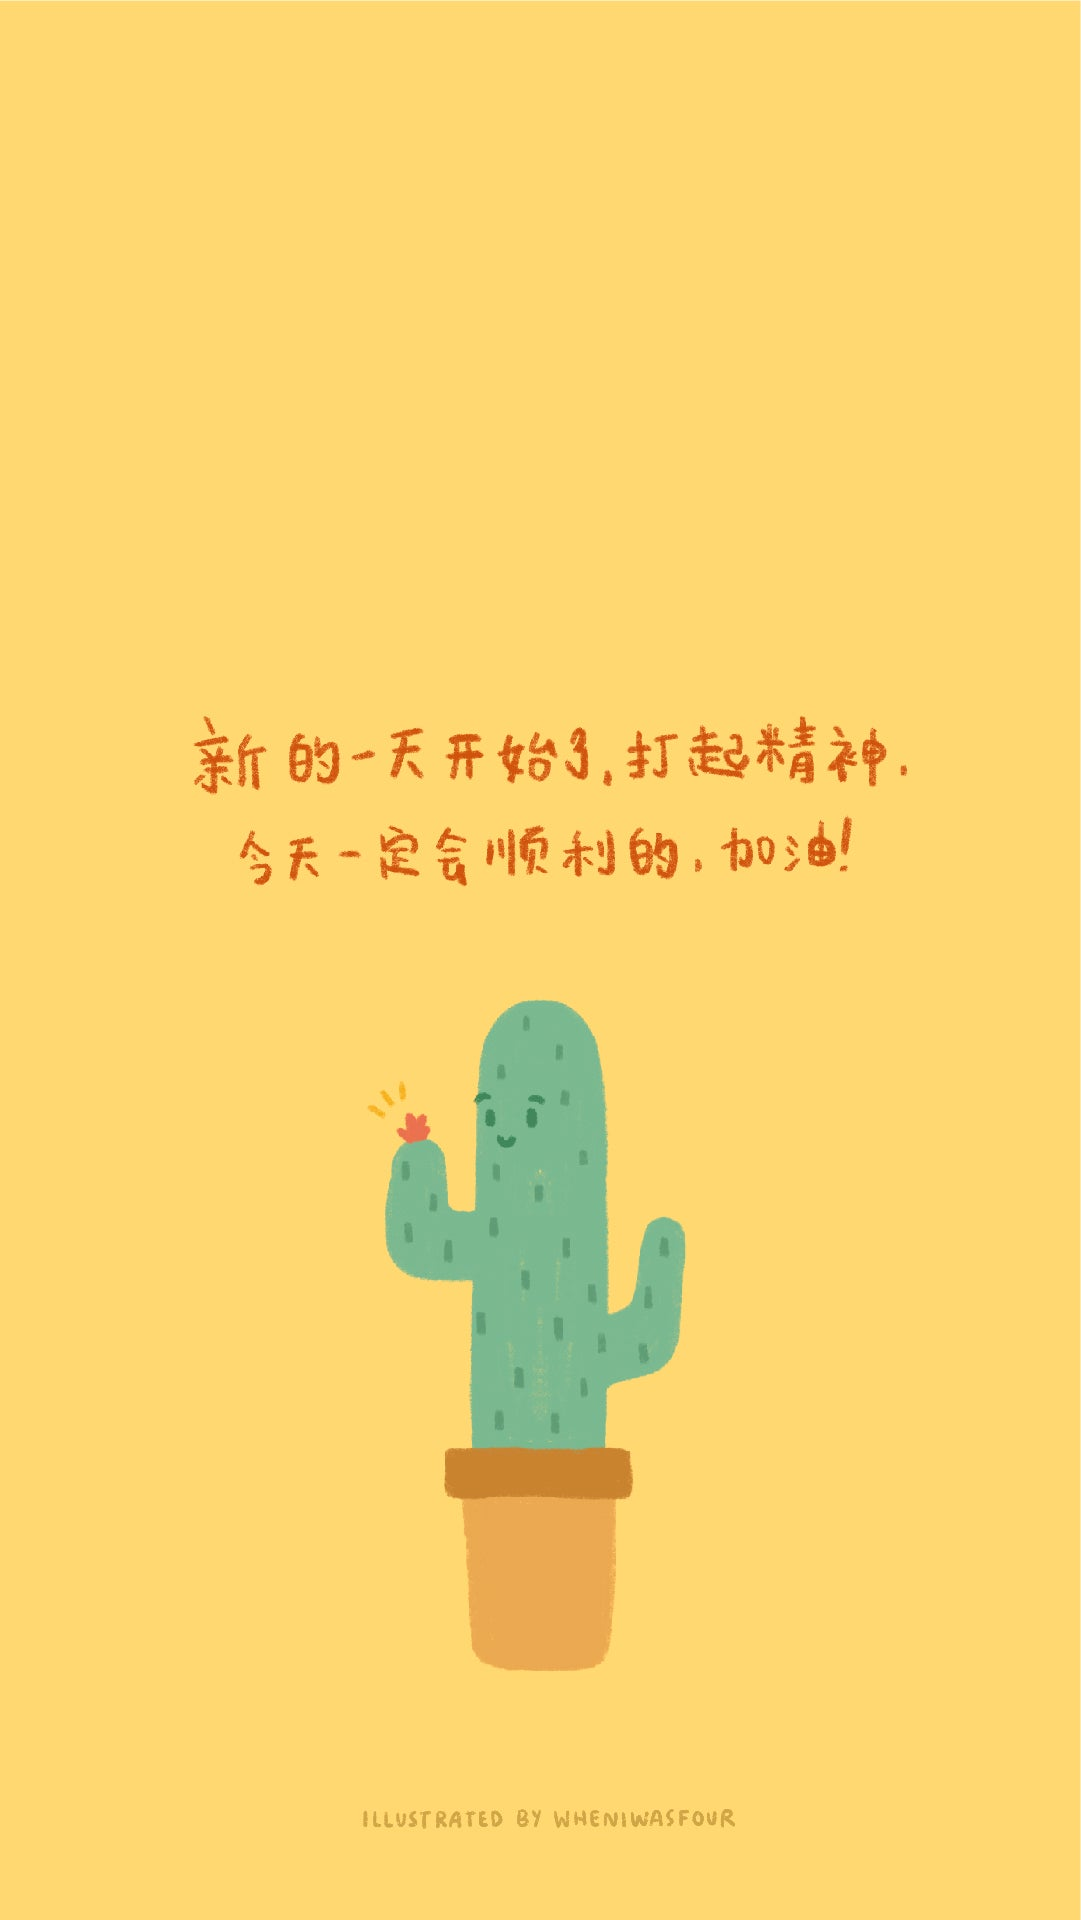 phone wallpaper of a digital illustration with chinese verse about a new day cheer up smooth sailing dont be sad